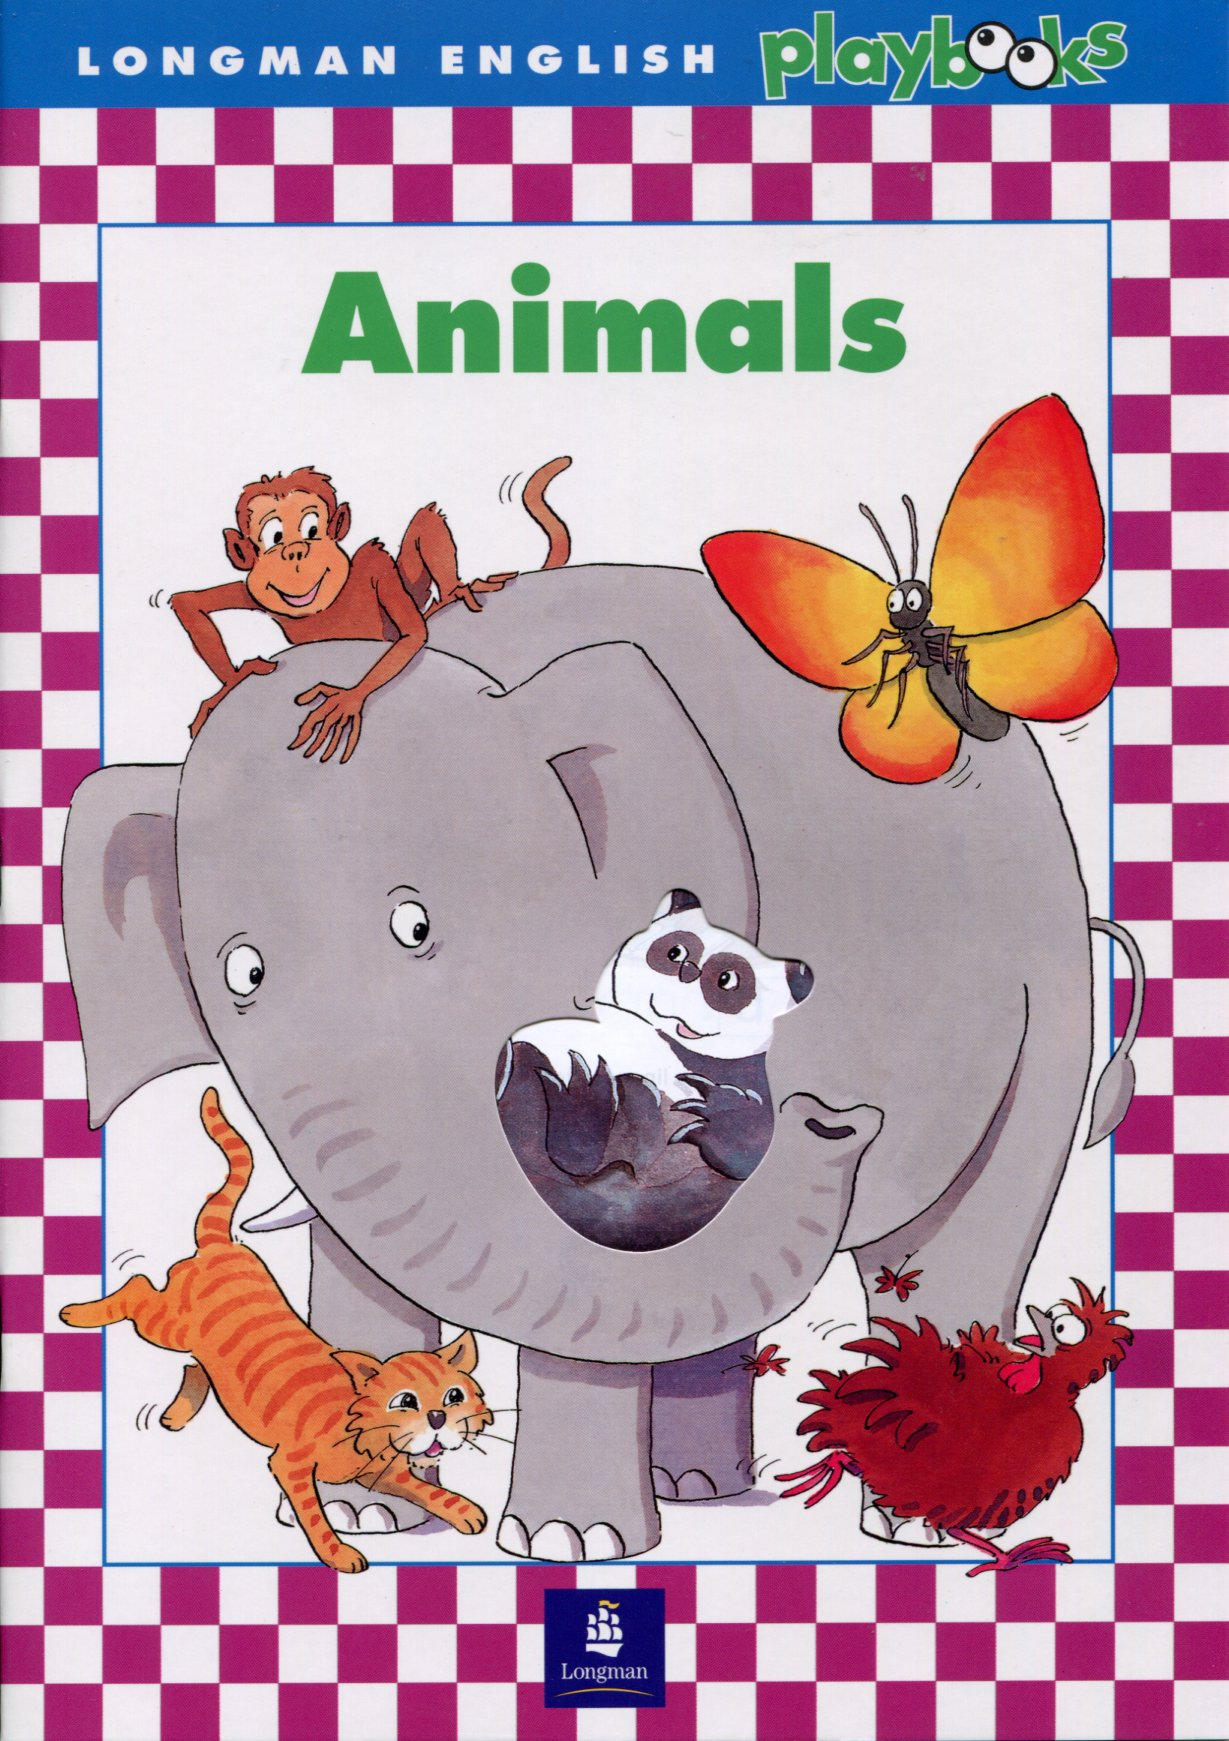 Longman English Playbooks: Animals